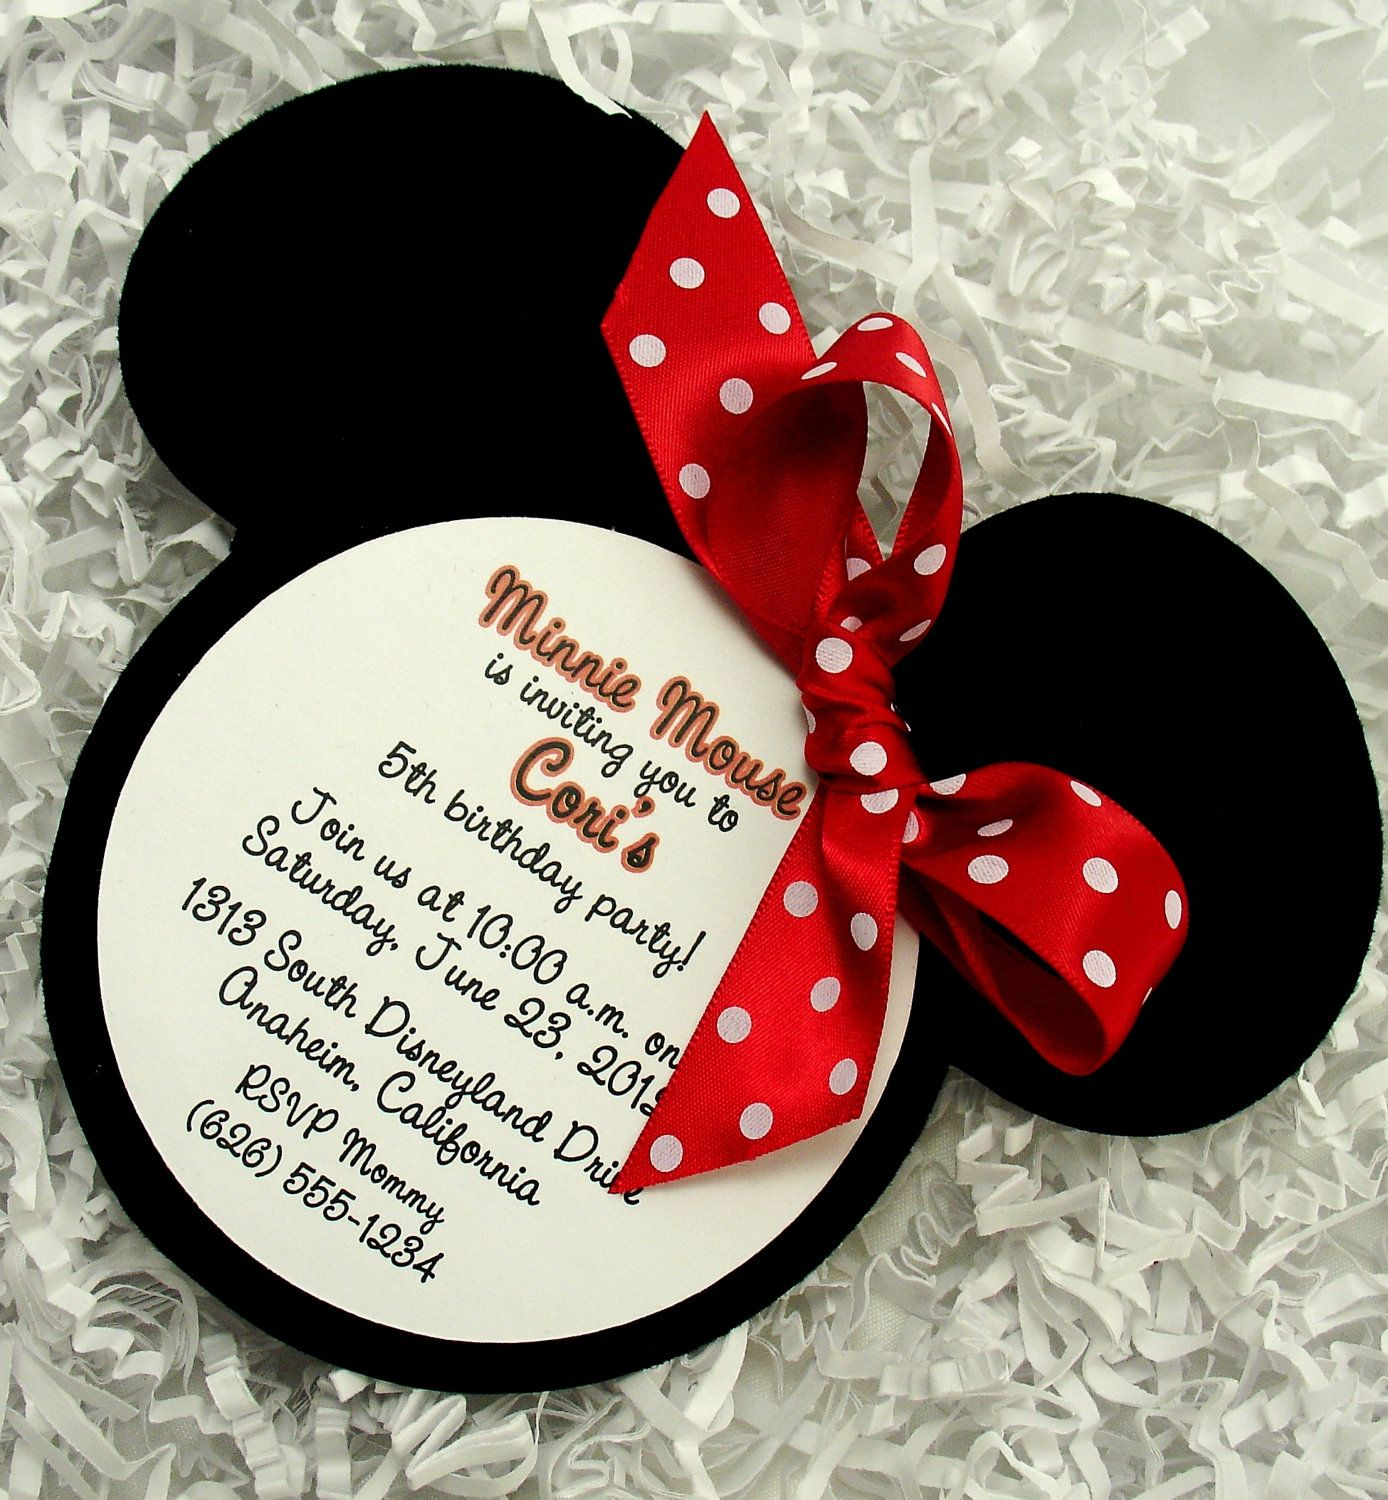 Minnie Mouse Invitations Red Handmade Velvet Die By Adorabletree